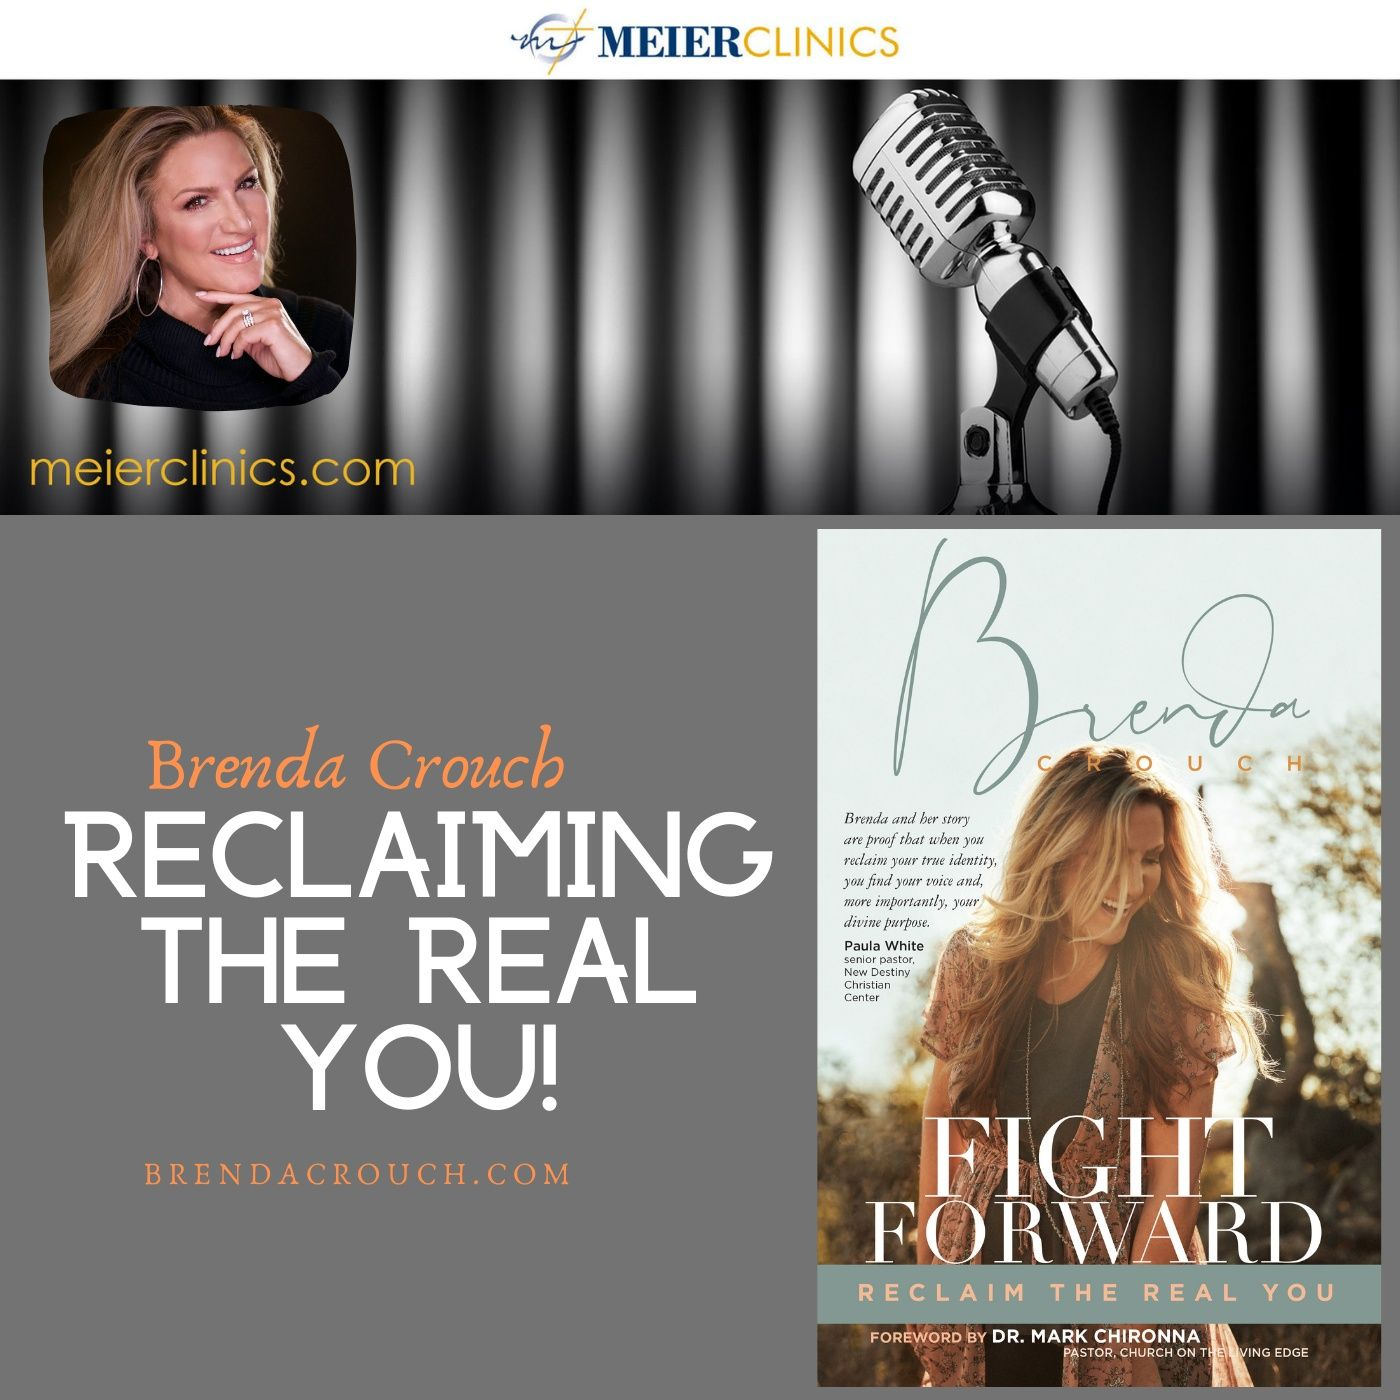 Reclaiming the Real YOU!